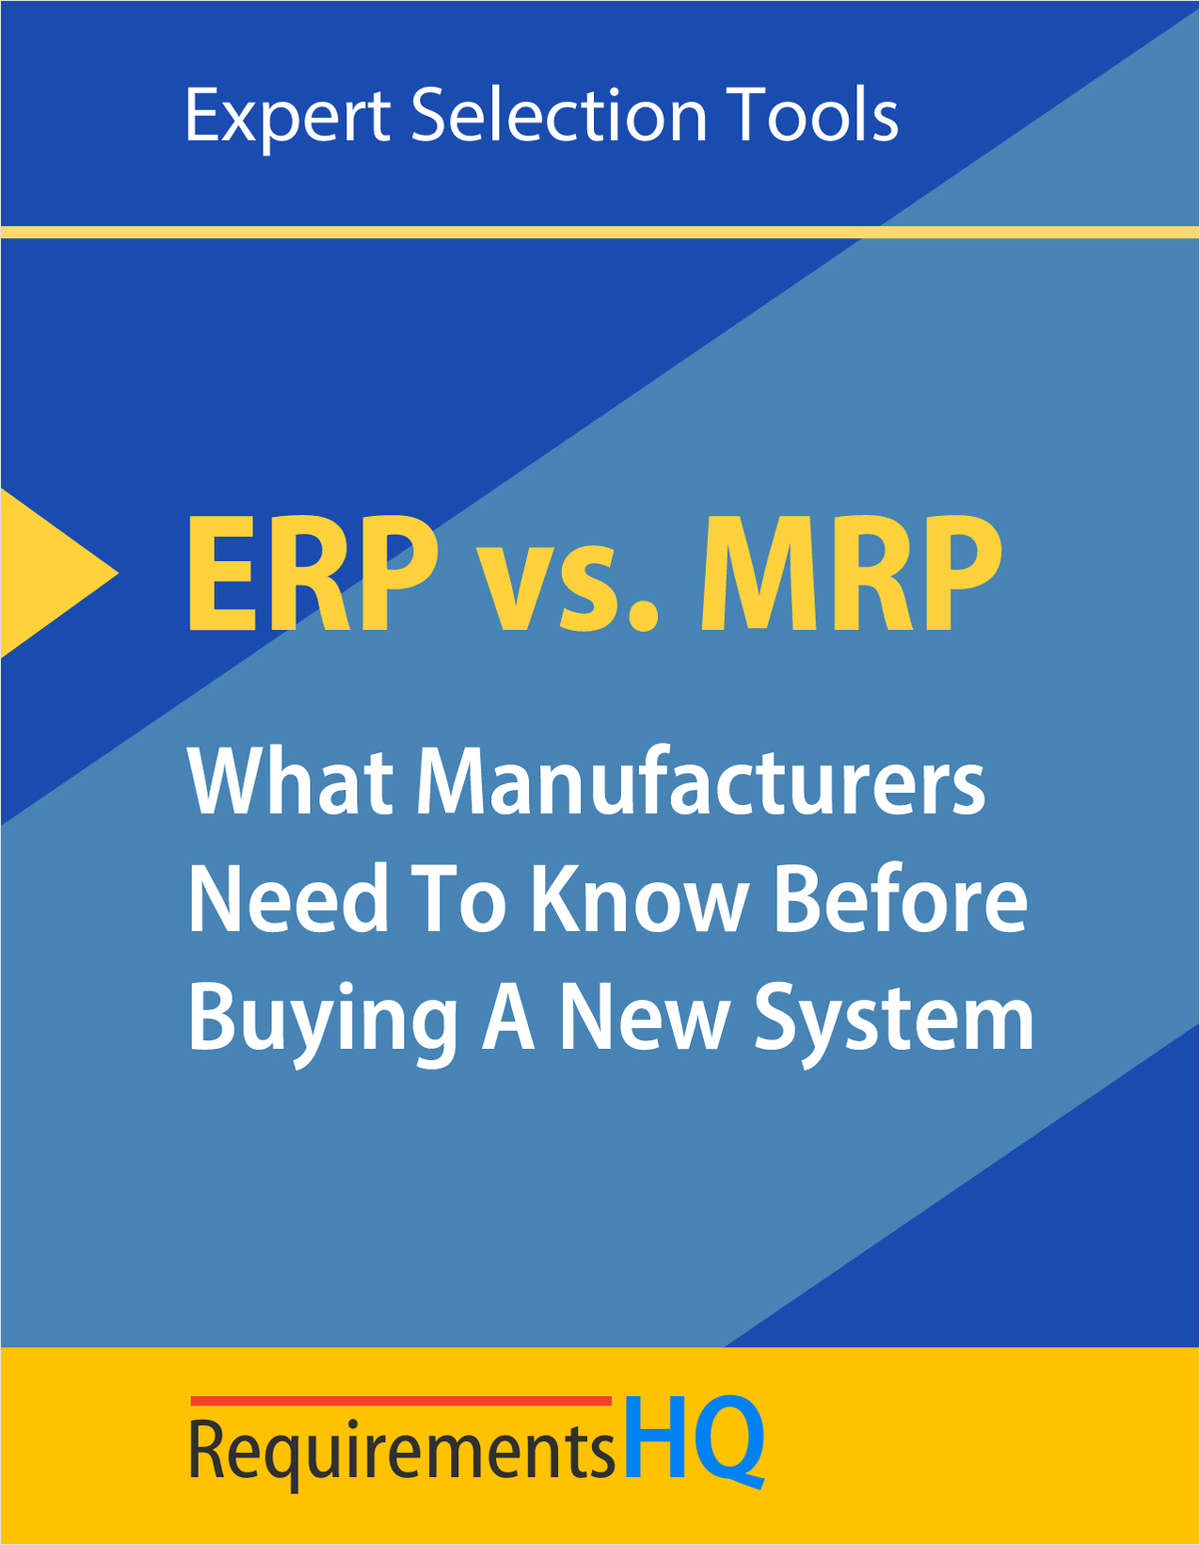 ERP vs. MRP--What Manufacturers Should Know Before Buying a New ERP System